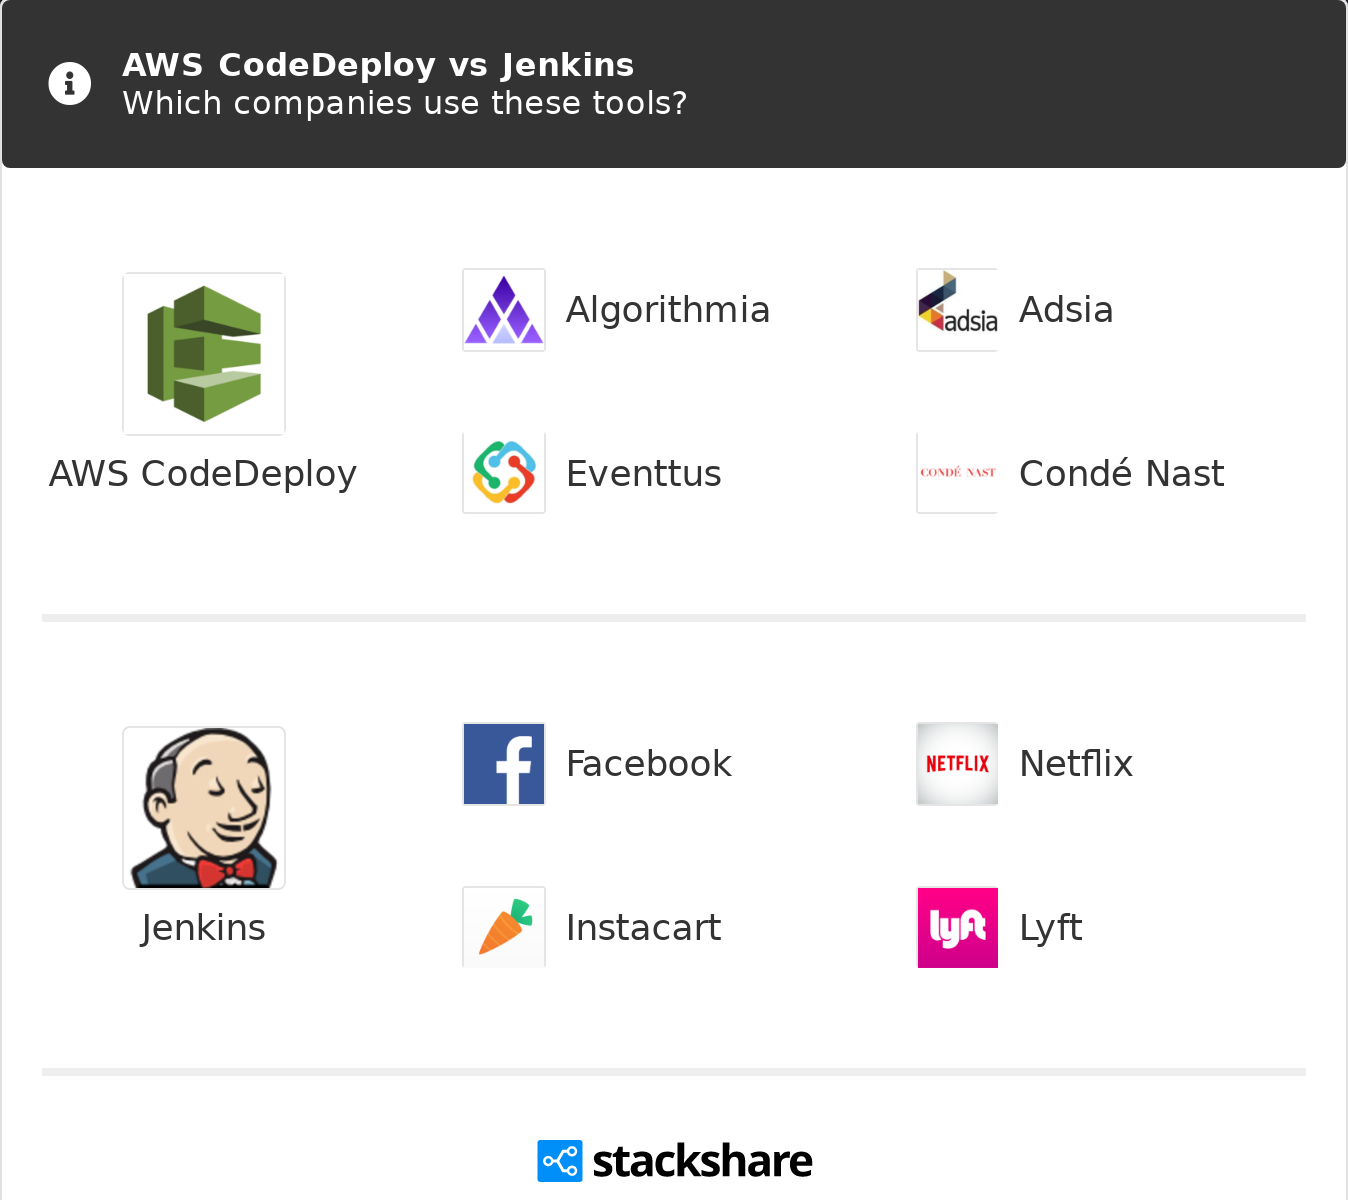 AWS CodeDeploy vs Jenkins | What are the differences?